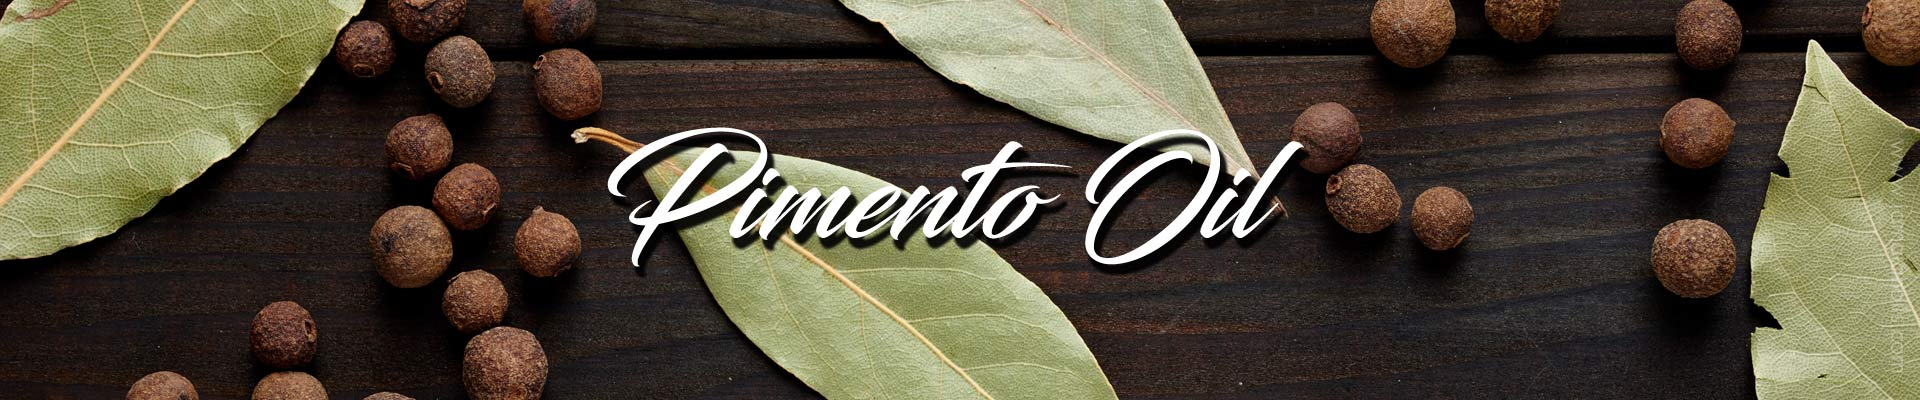 pimento-oil-category-banner-jamaicanoils.jpg